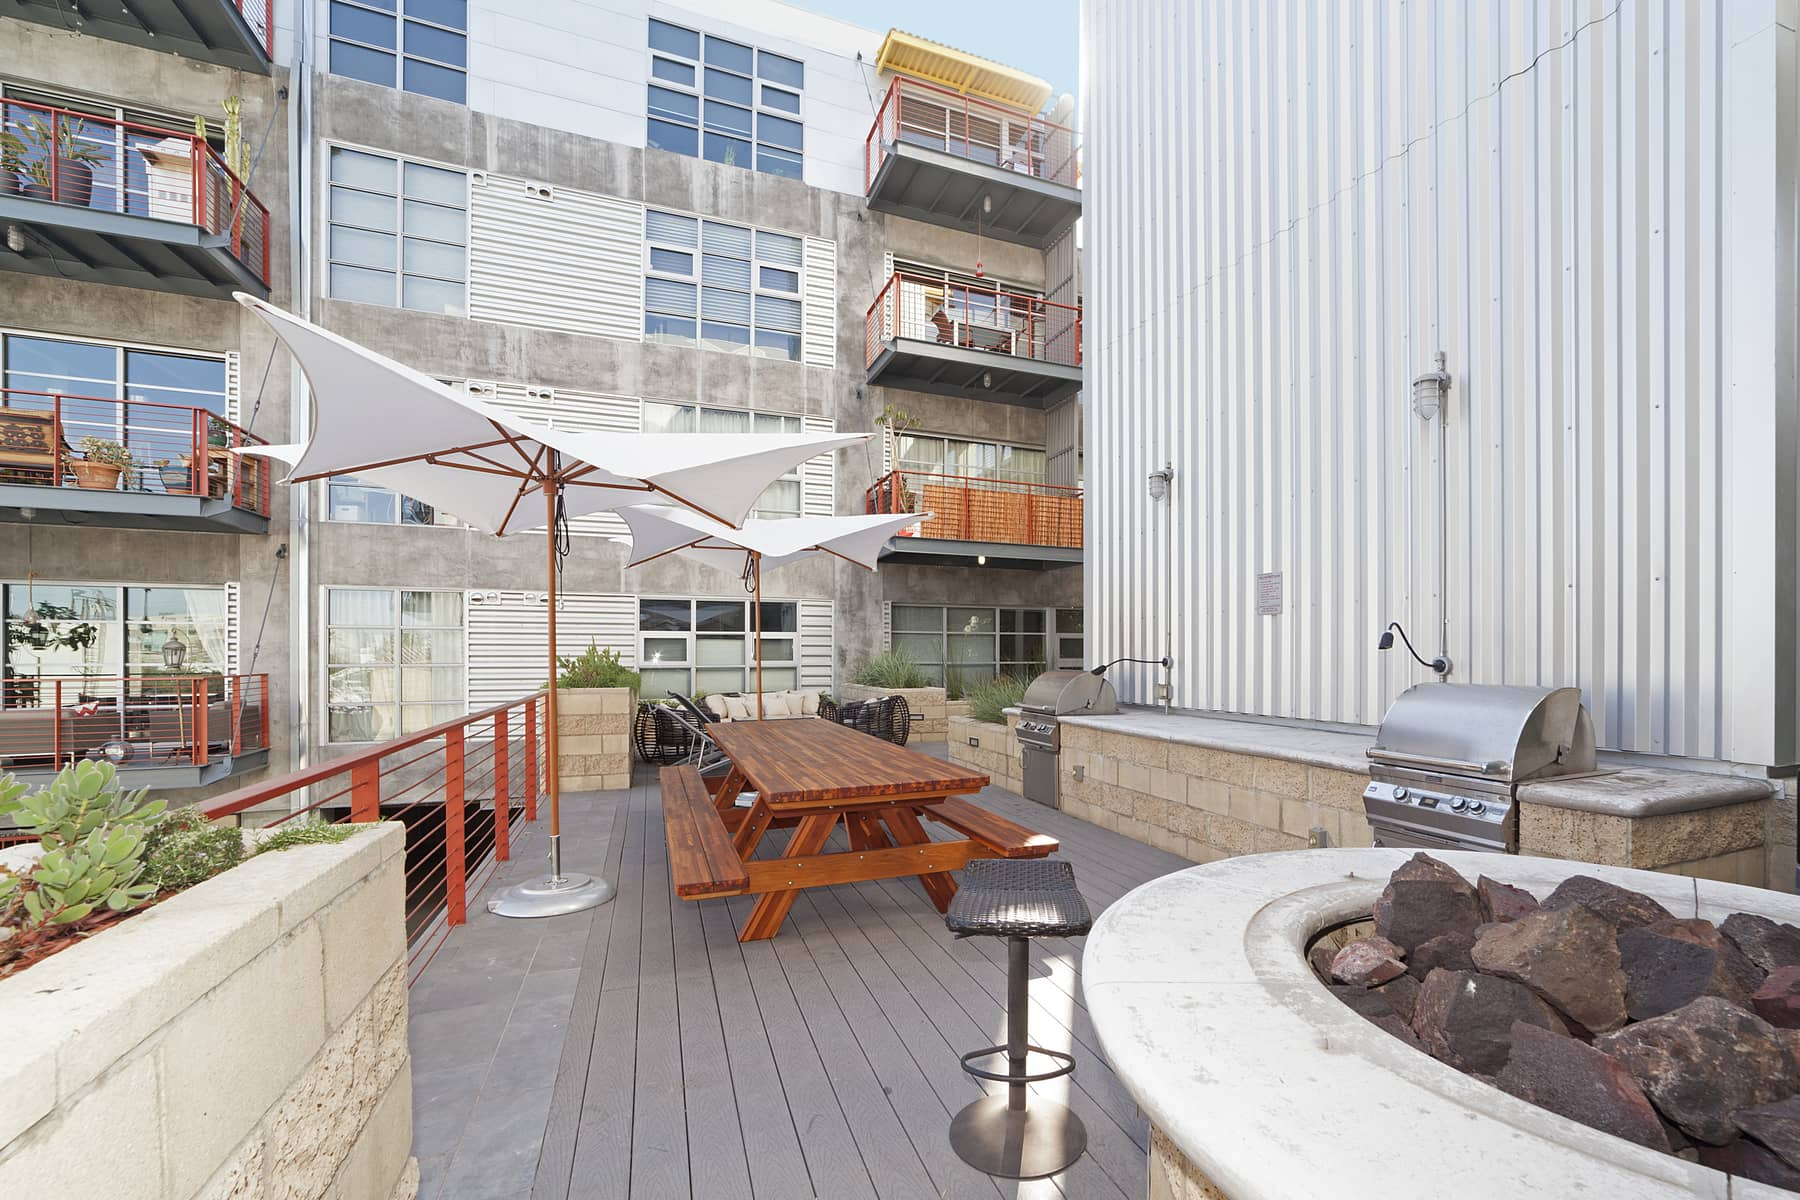 The complex features include a fitness center, gated parking garage, a large bicycle storage room, and an outdoor courtyard with gas grills, fire pit and comfortable furniture for lounging with friends.